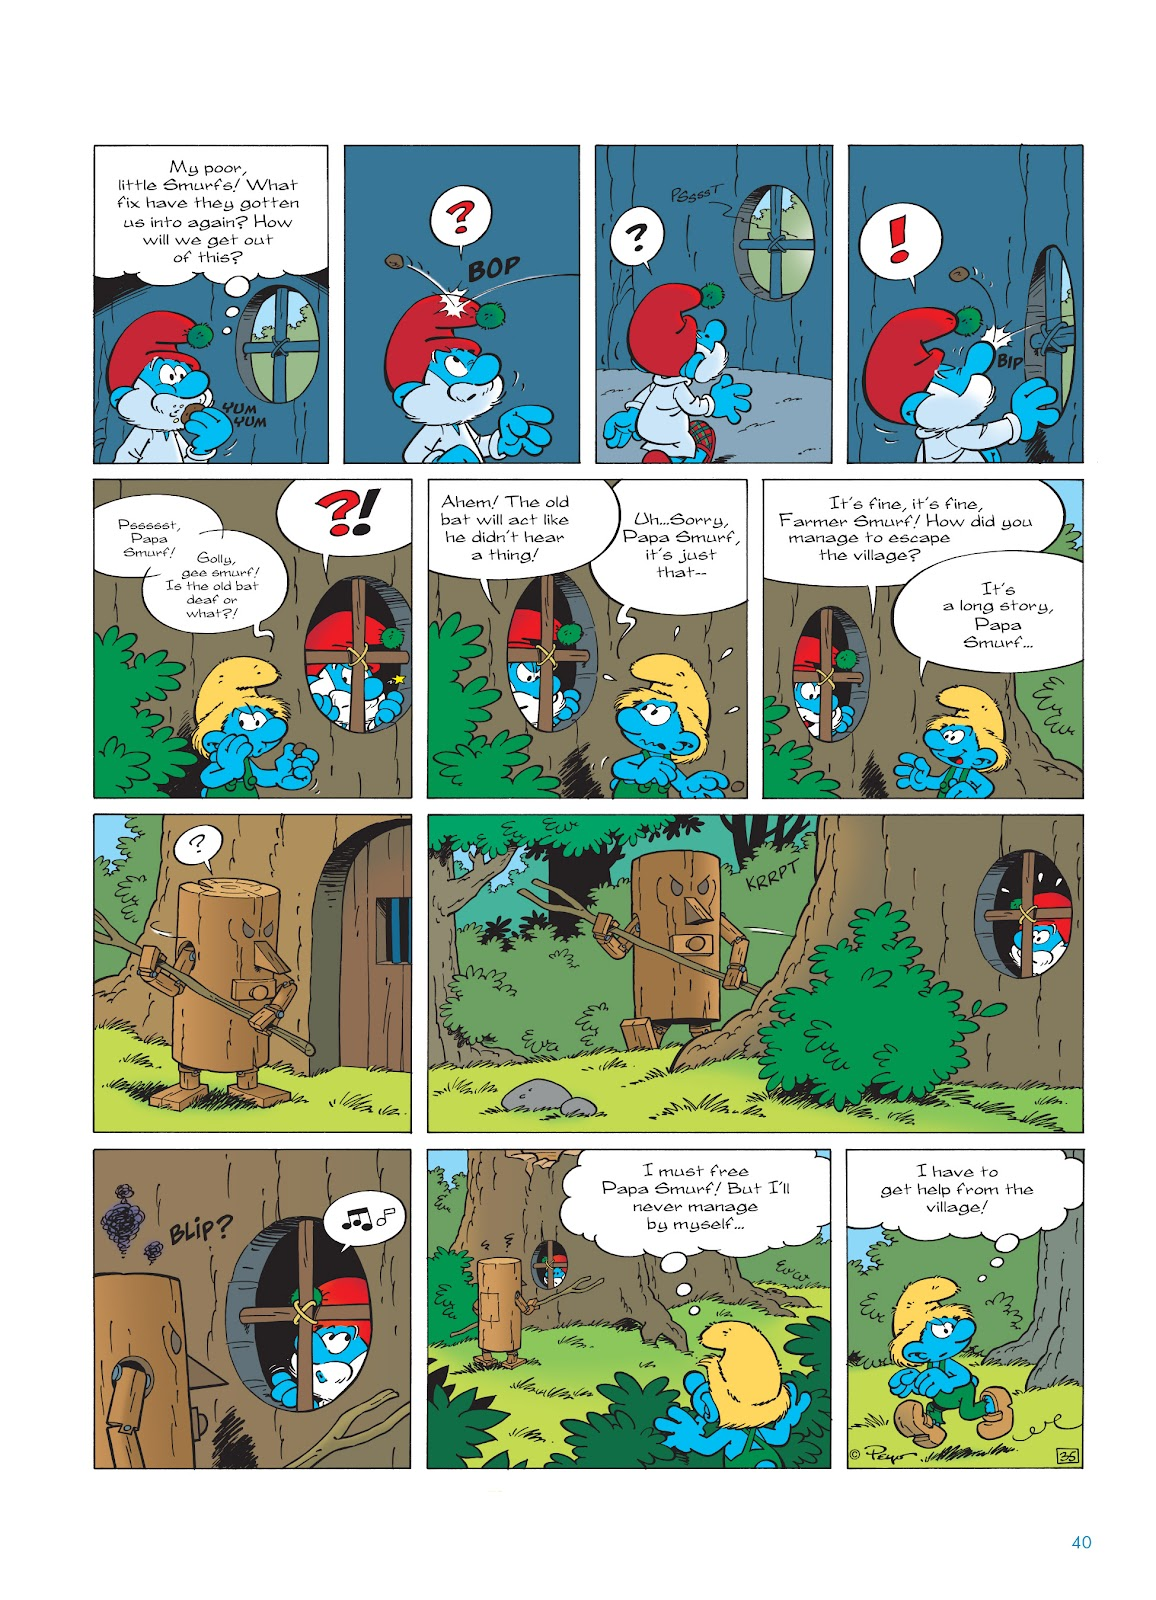 Read online The Smurfs comic -  Issue #23 - 40